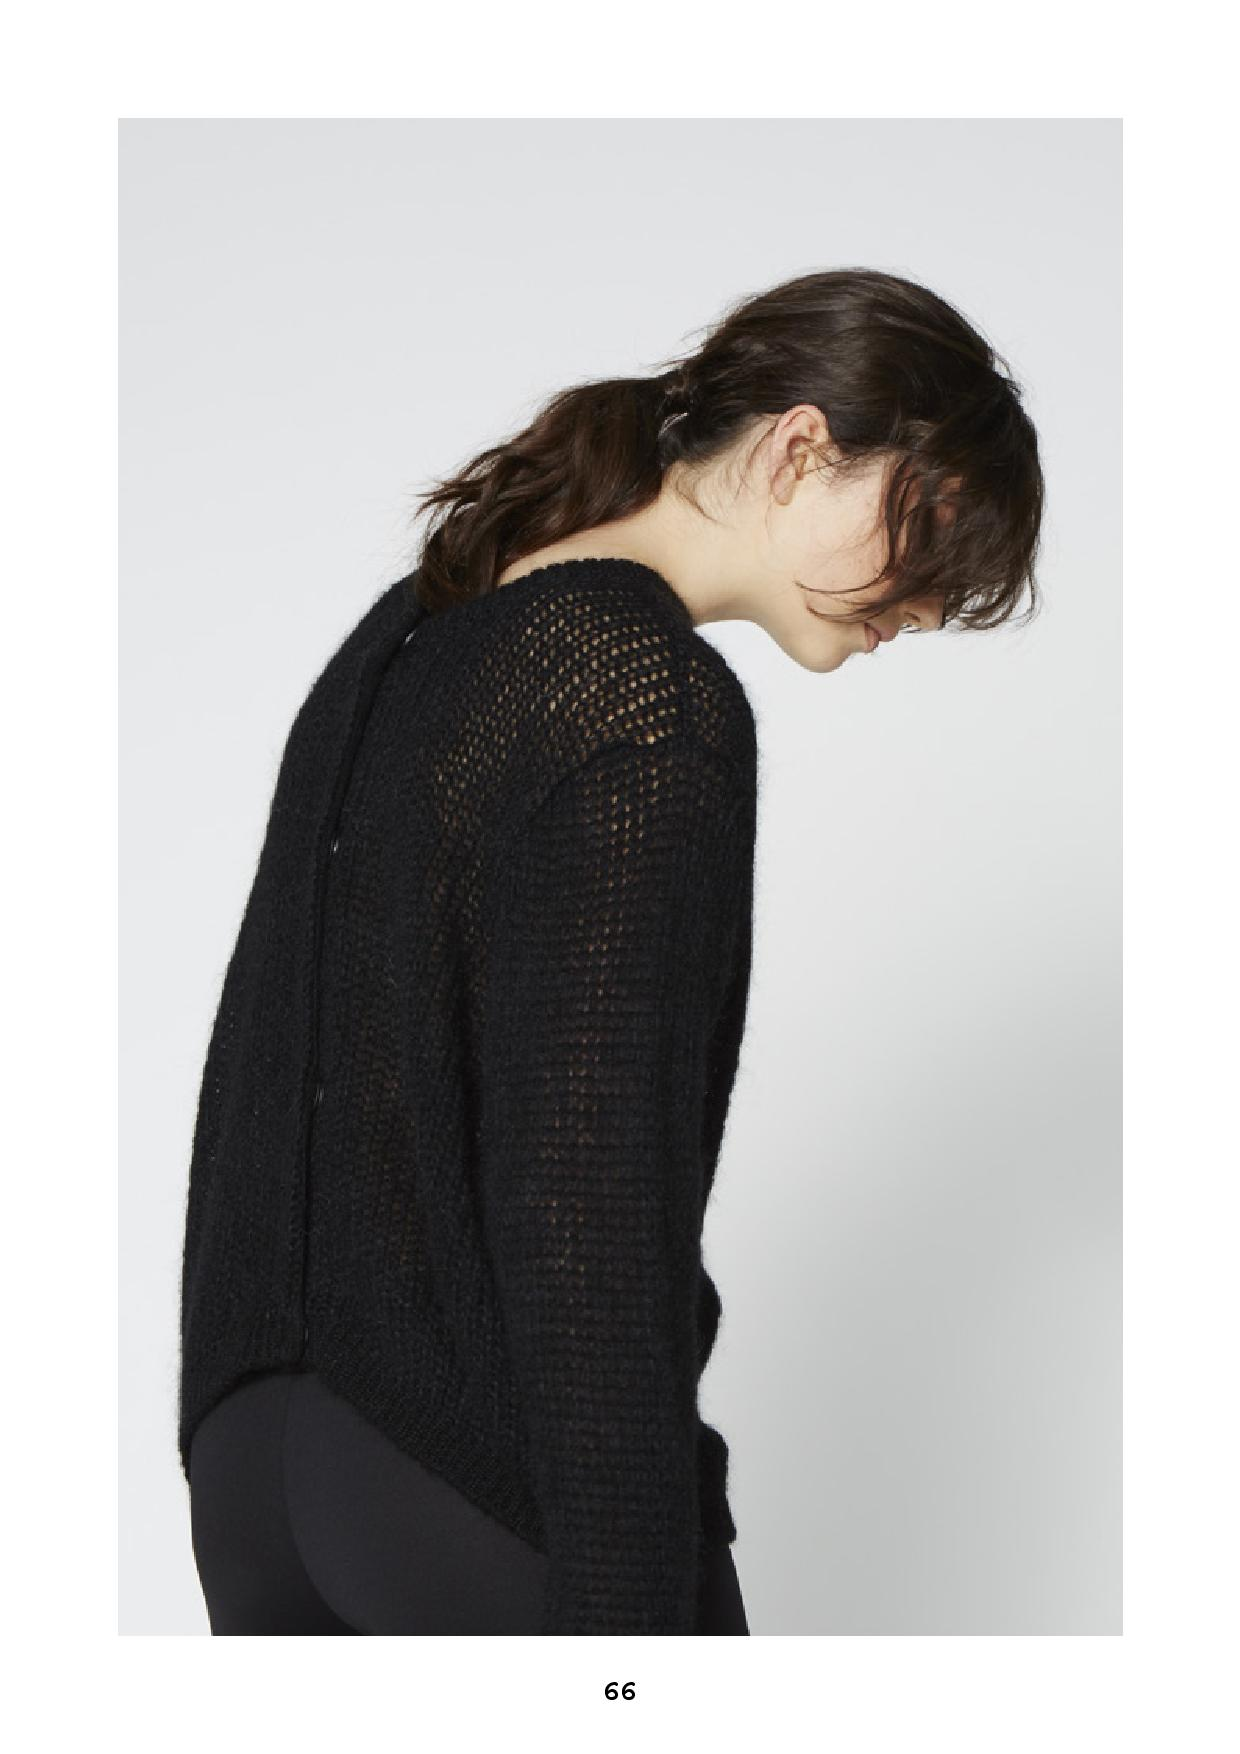 aw17 women s keypieces-page-067